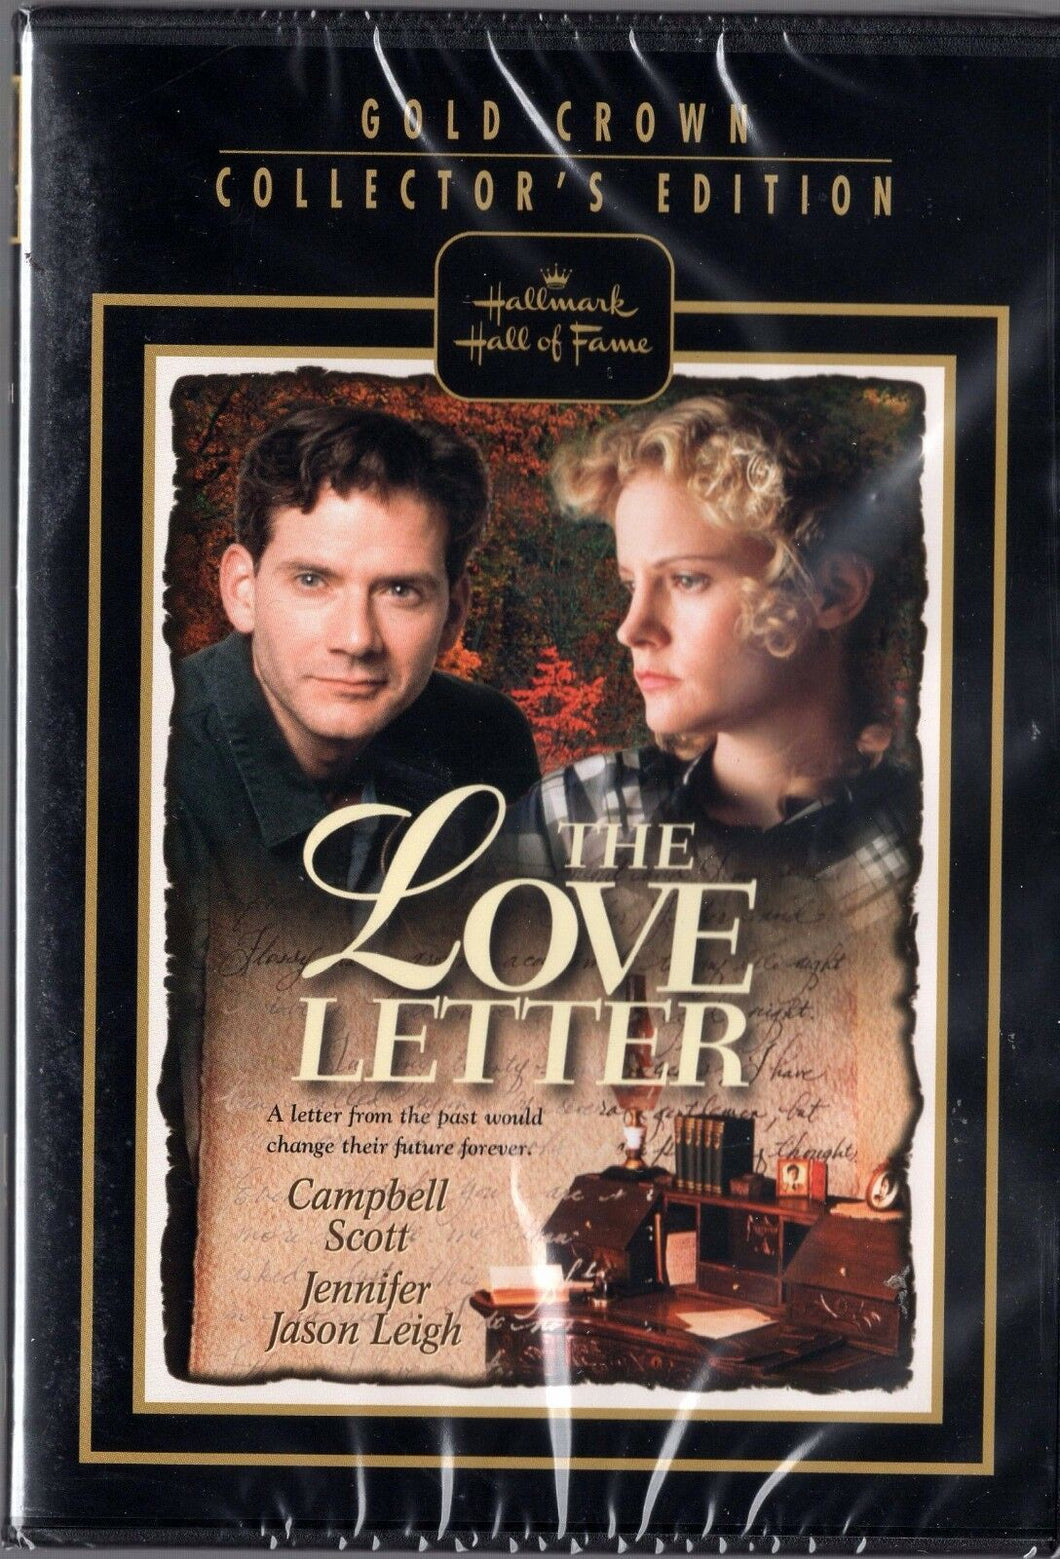 The Love Letter Hallmark Hall of Fame DVD